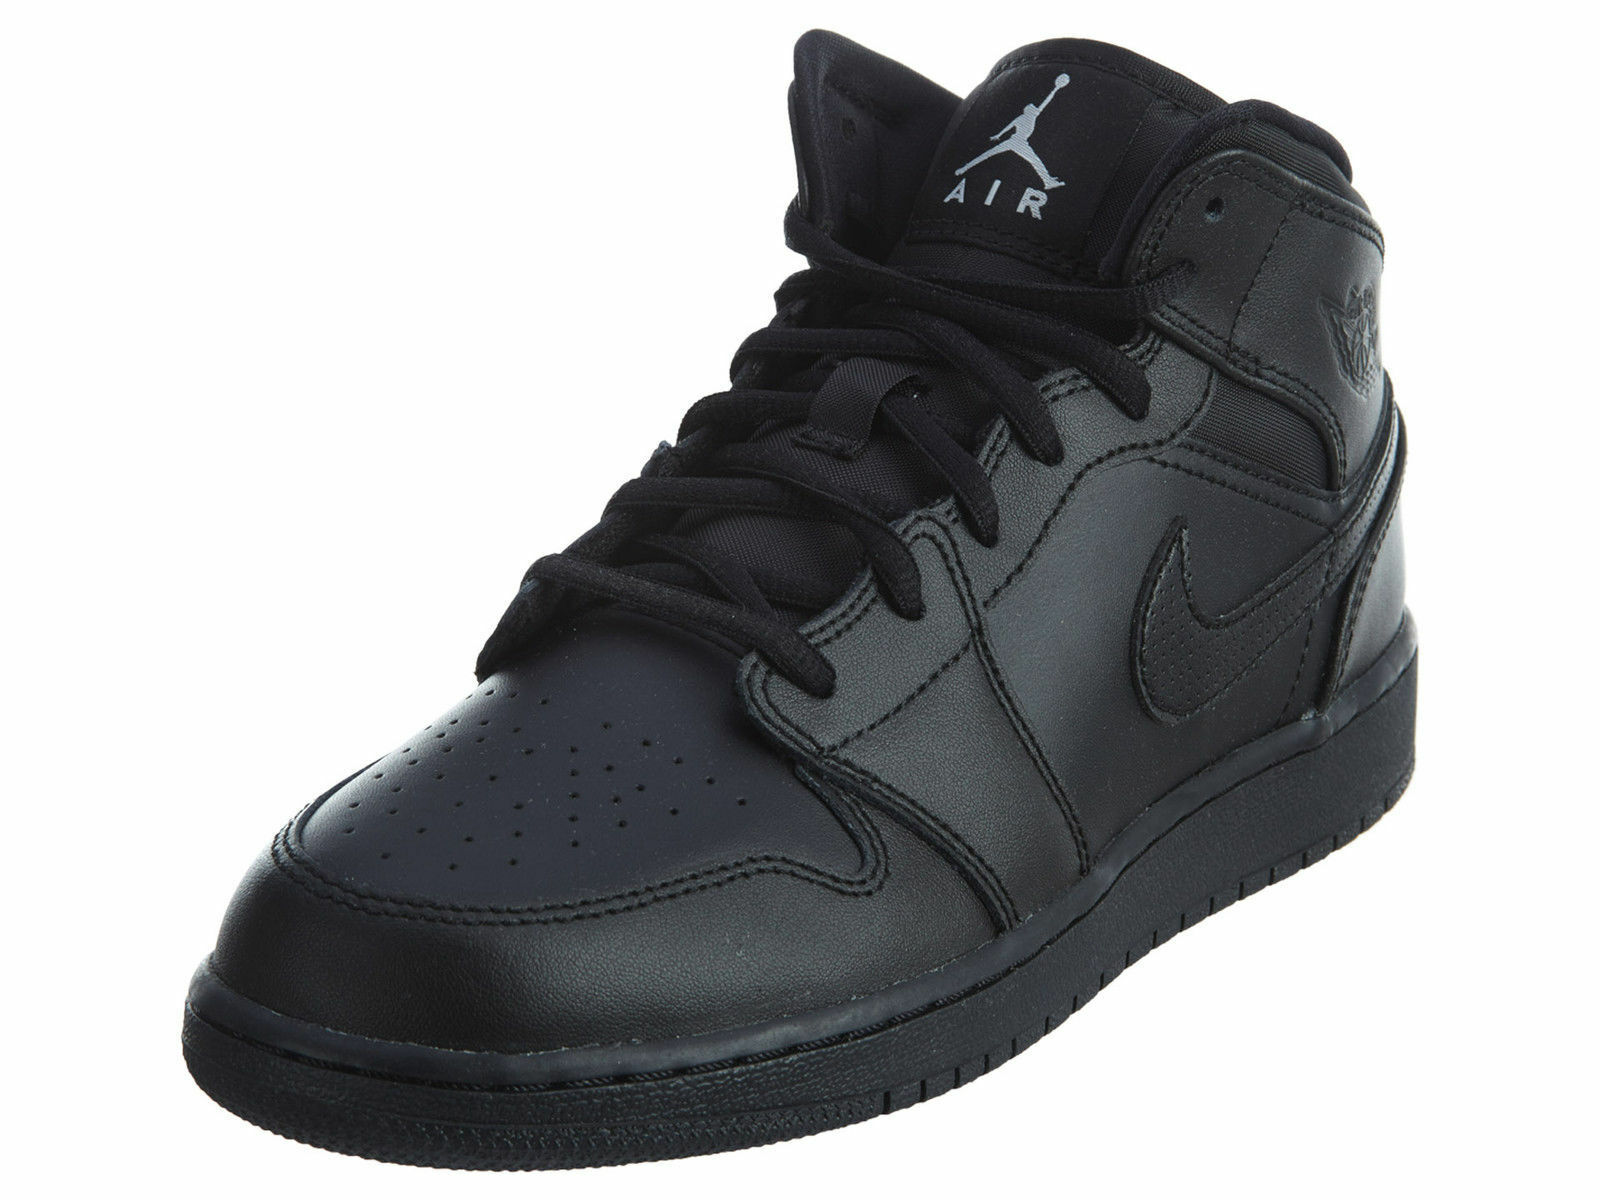 Nike Air Jordan 1 Mid Youth Black Shoes  [554725-021/Youth Size 7]